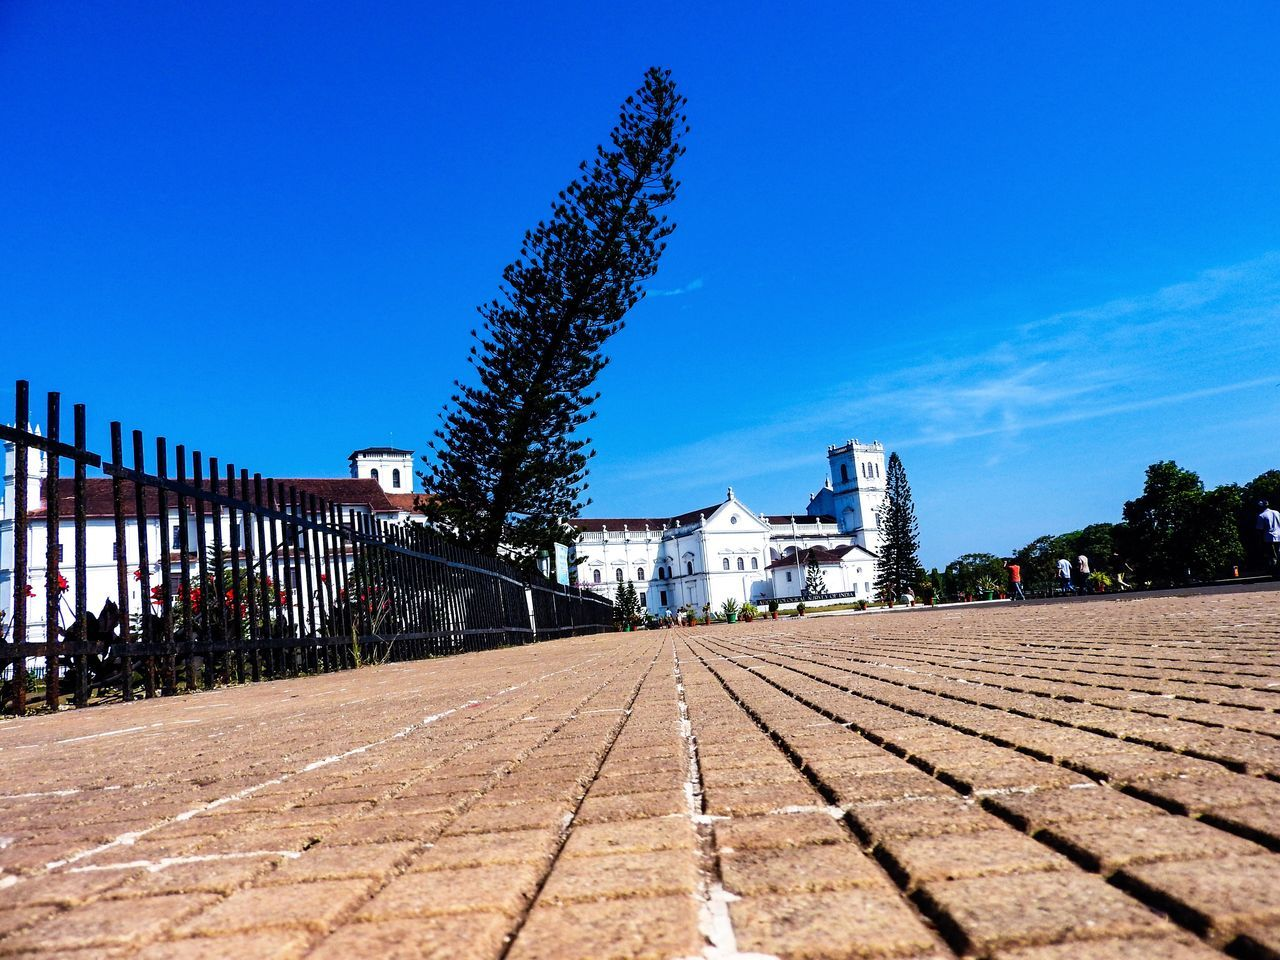 architecture, building exterior, built structure, blue, day, outdoors, tree, no people, sky, clear sky